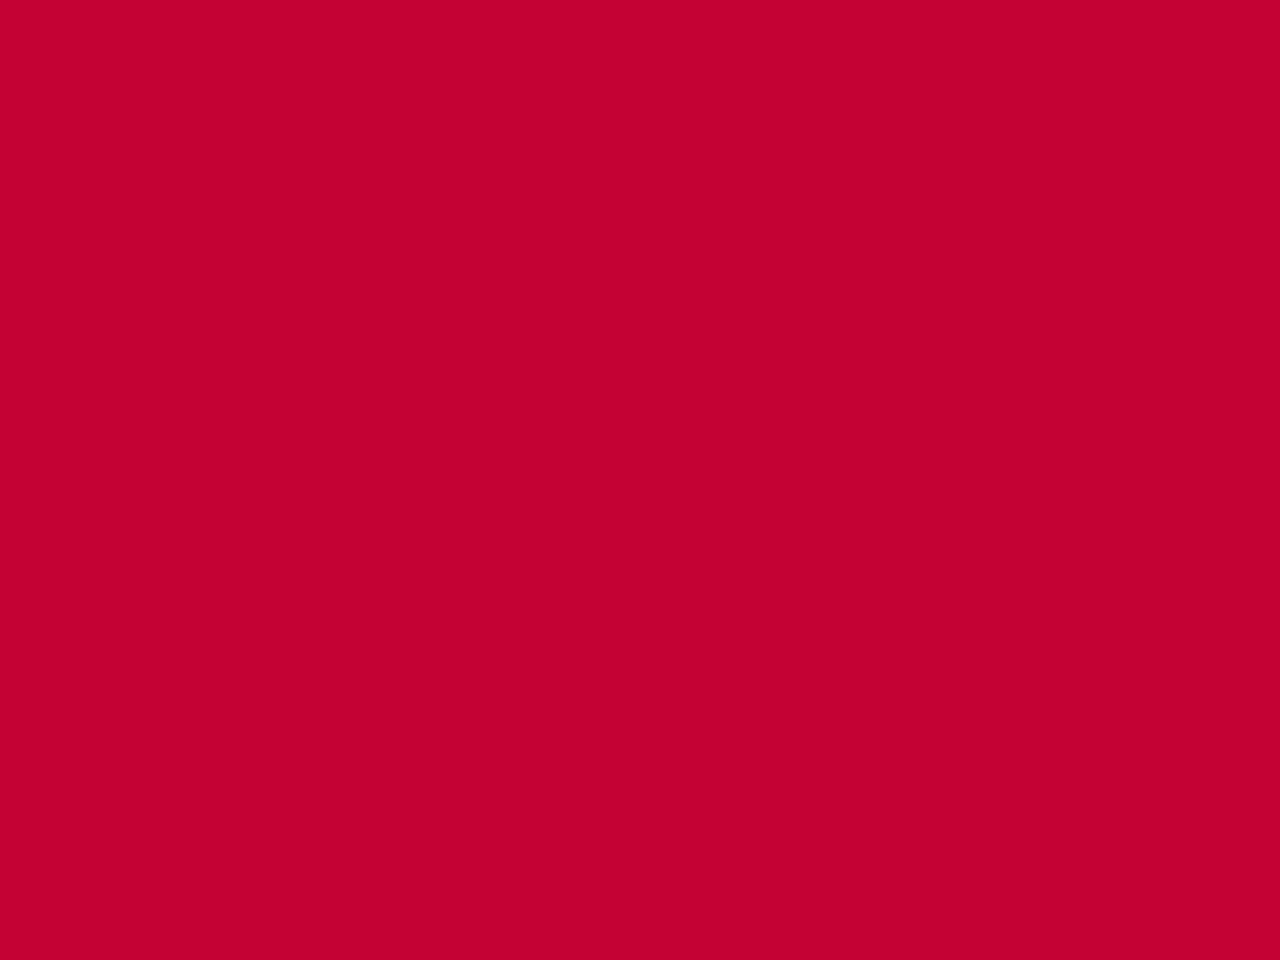 1280x960 Red NCS Solid Color Background